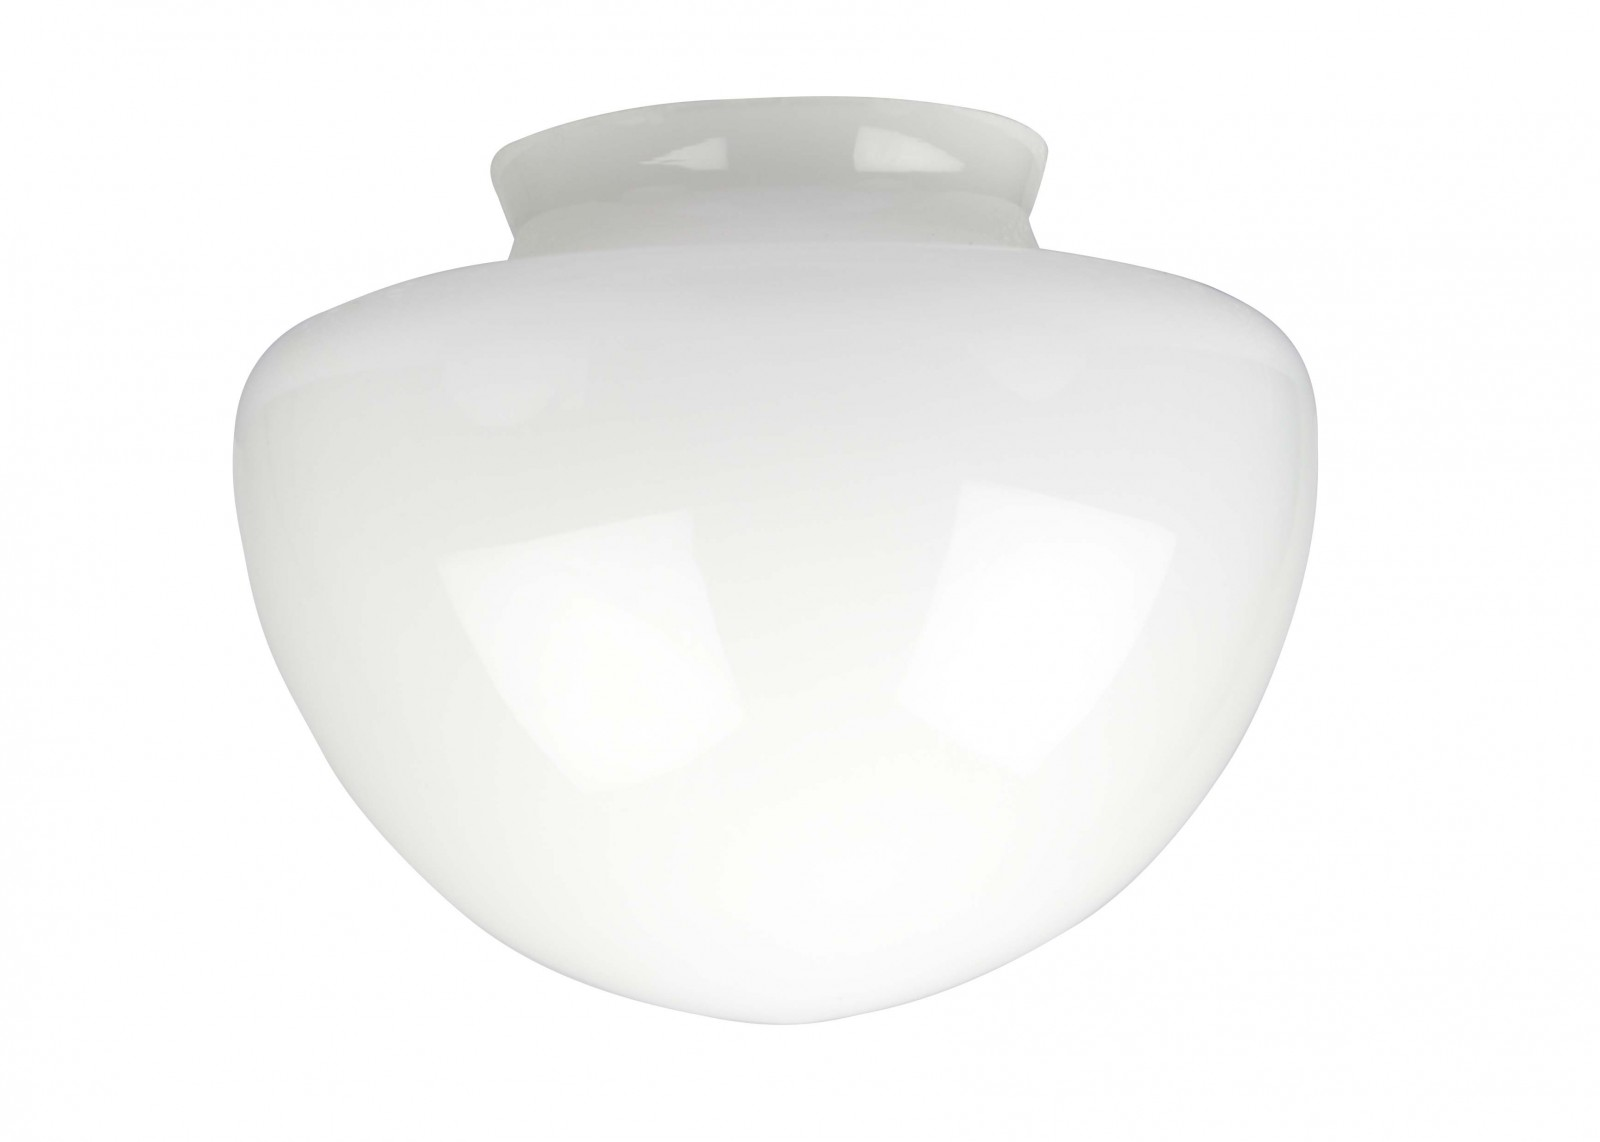 spare glass for ceiling fan portland ambiance ugo champion petite home commercial heaters ventilation ceiling fans uk